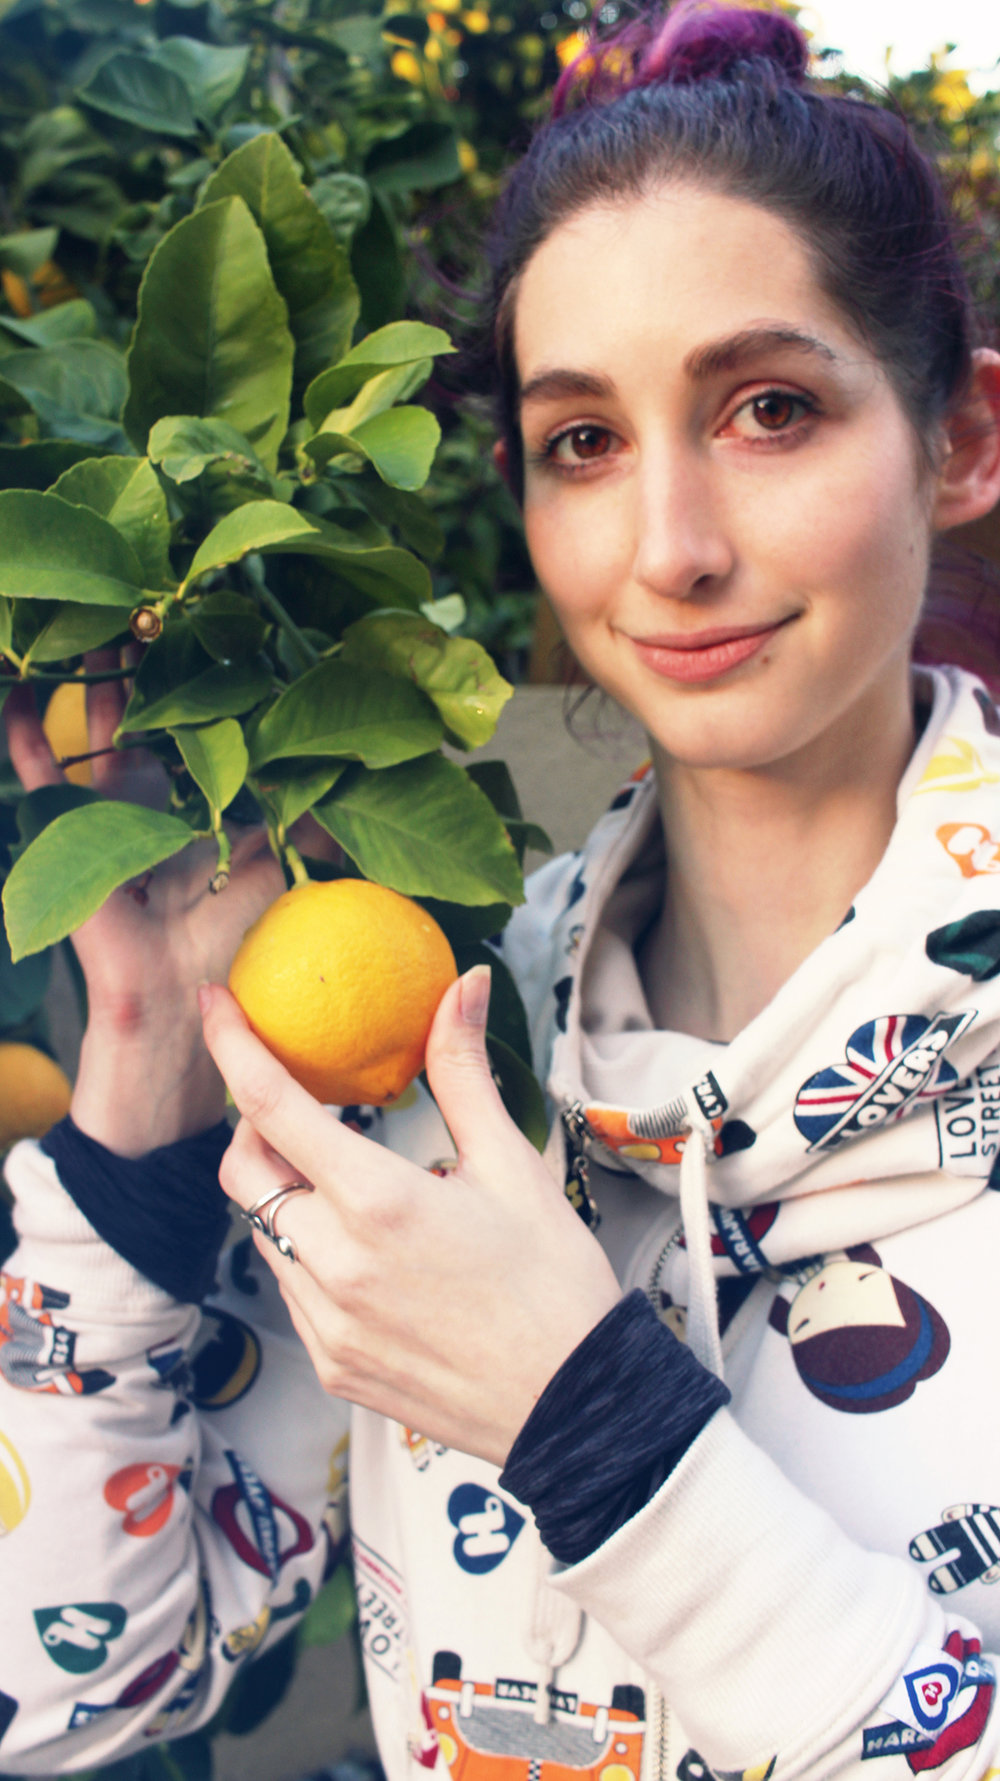 Geena fondles an orange in the backyard of Nir's family home, celebrating the second night of Hanukkah with Shorashim Israel, 2016.